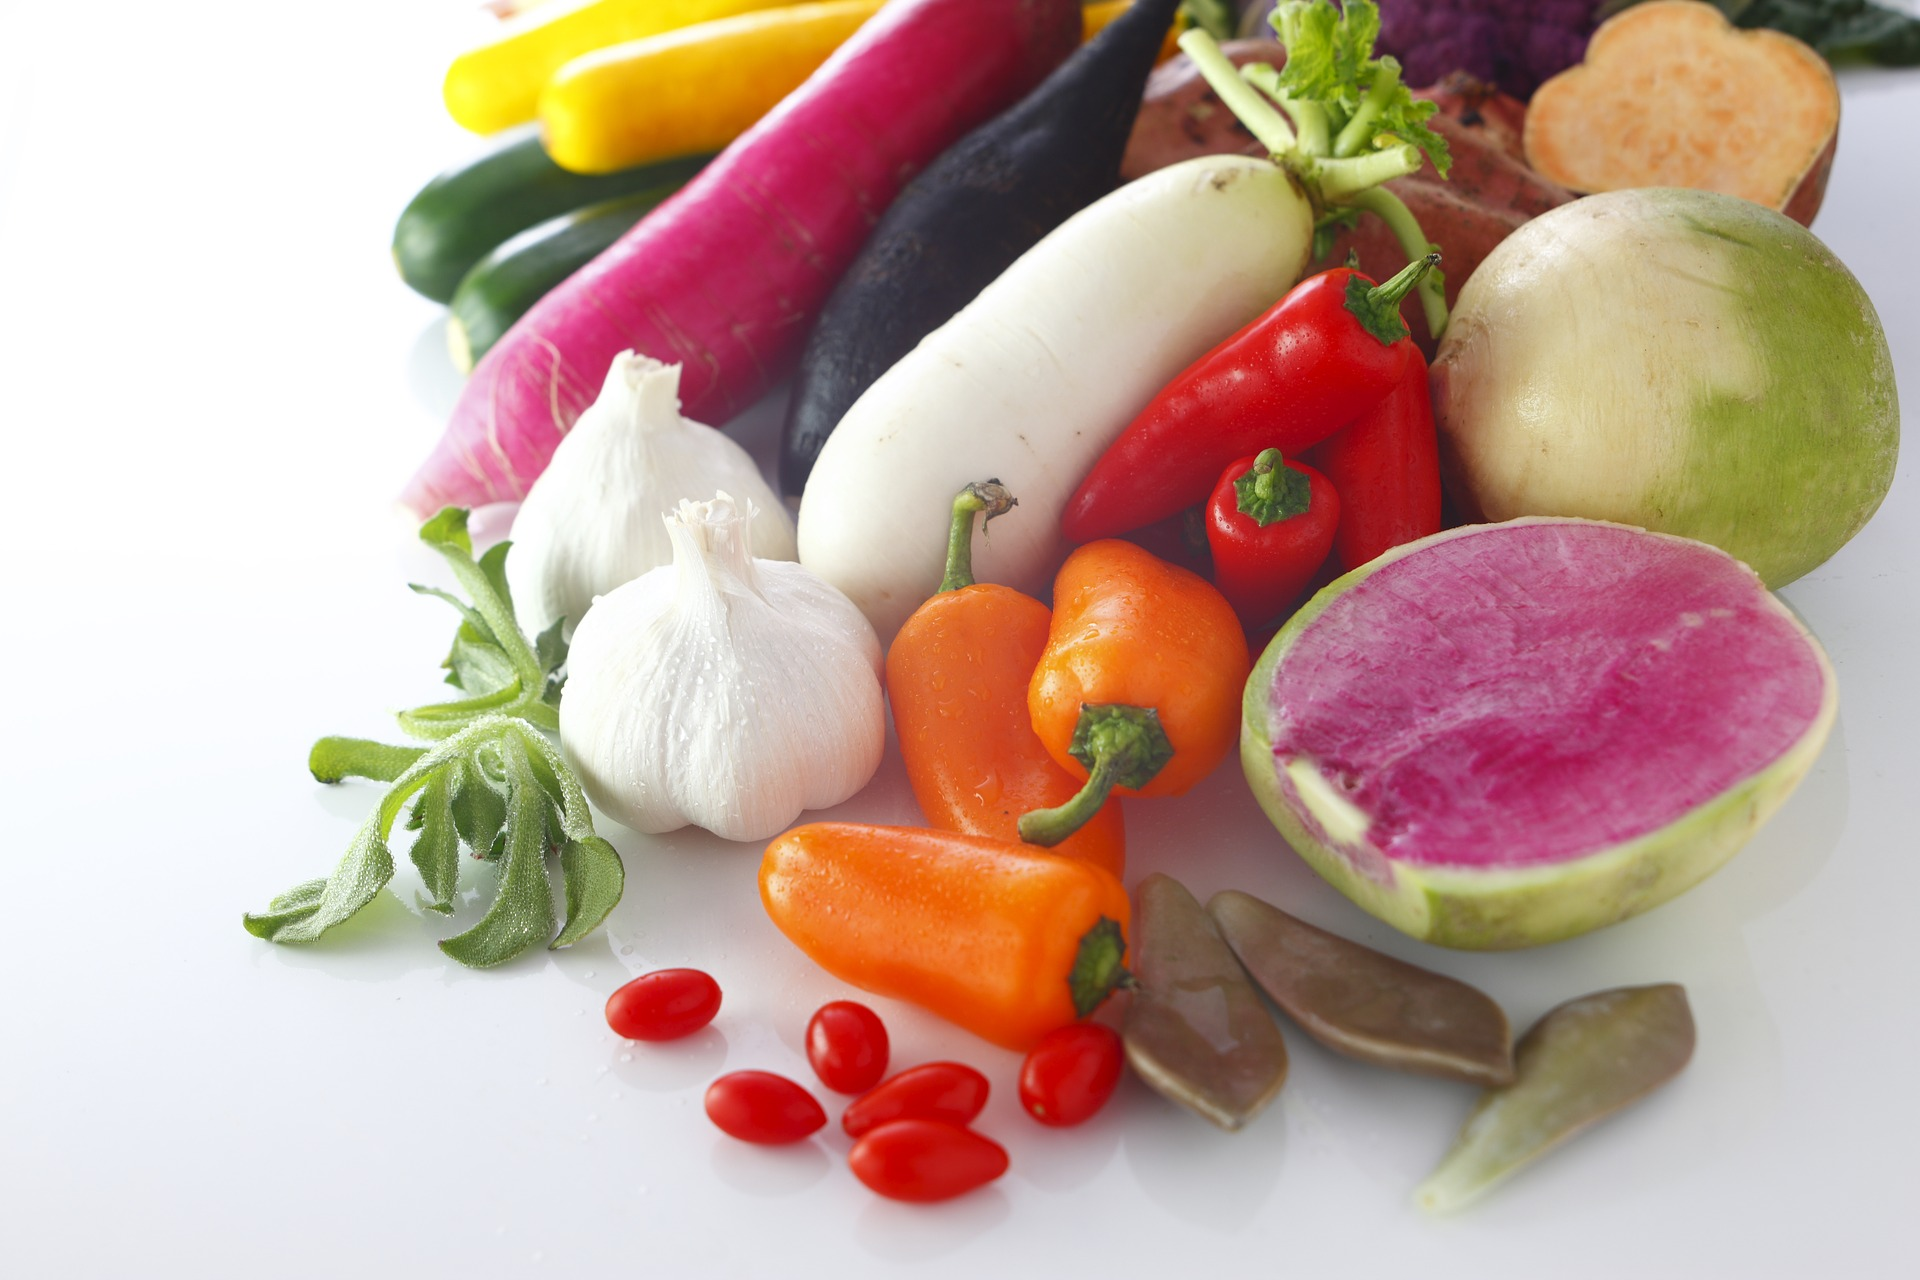 Arranged collection of fruit and vegetables